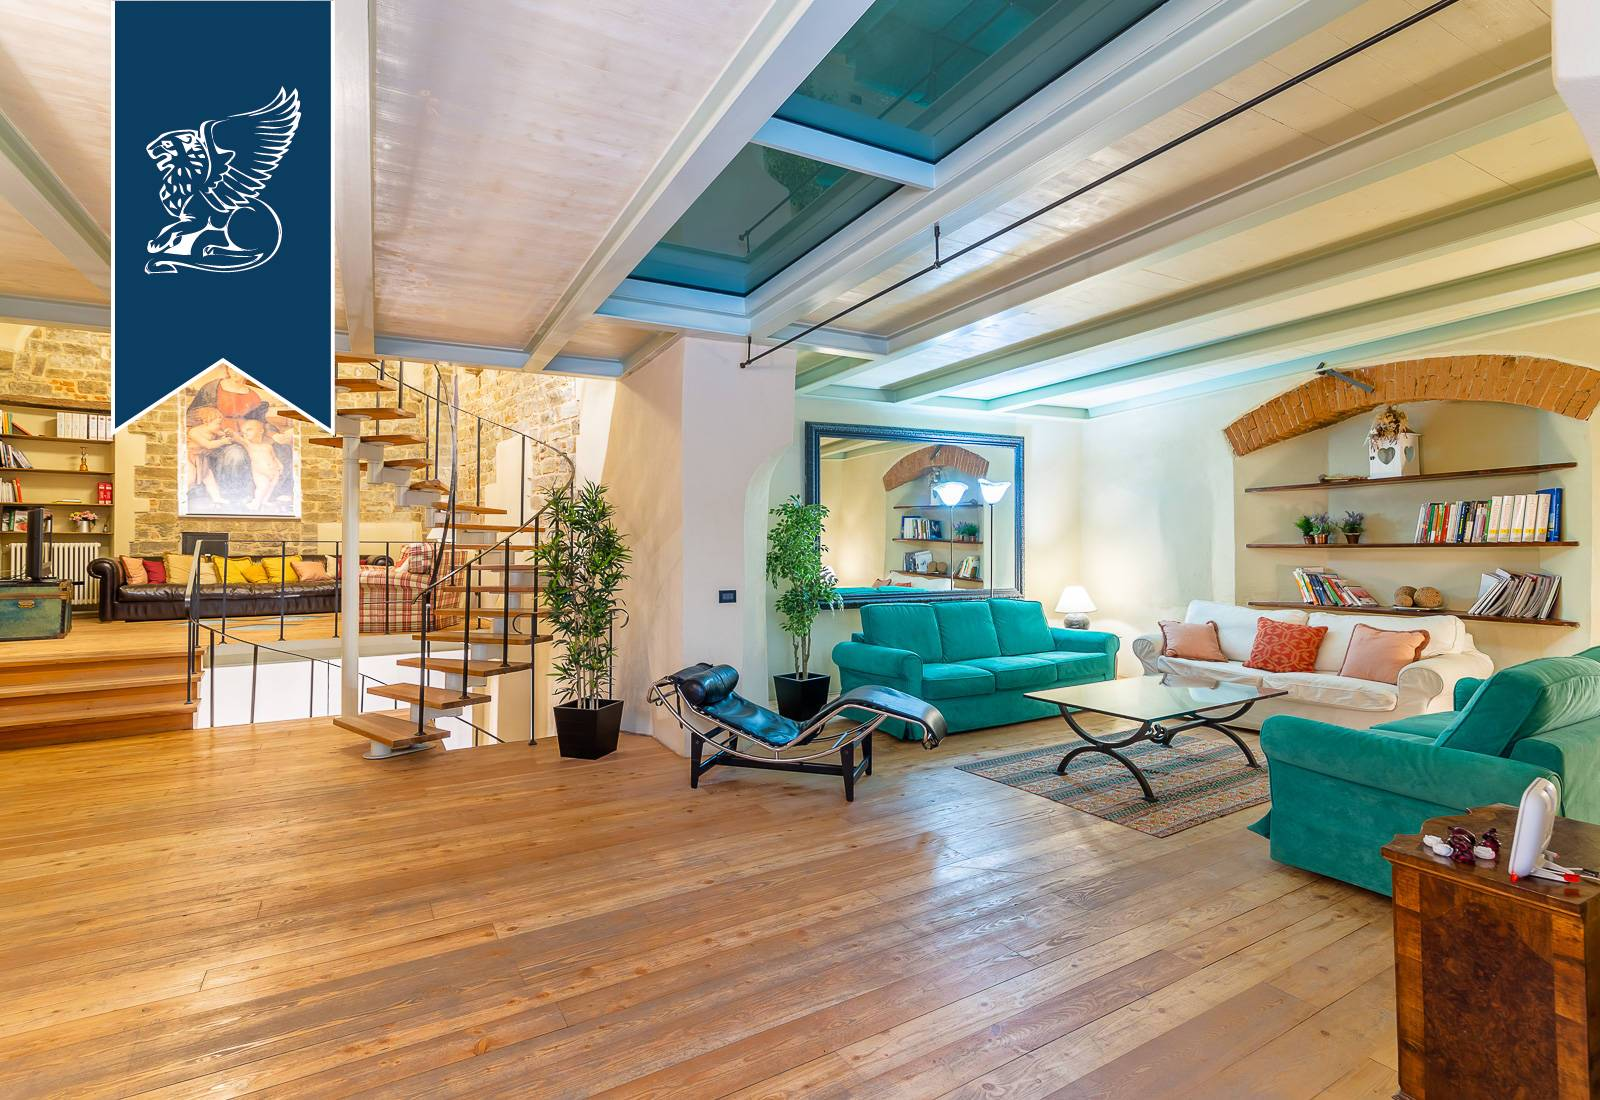 Loft open space in Vendita a Firenze